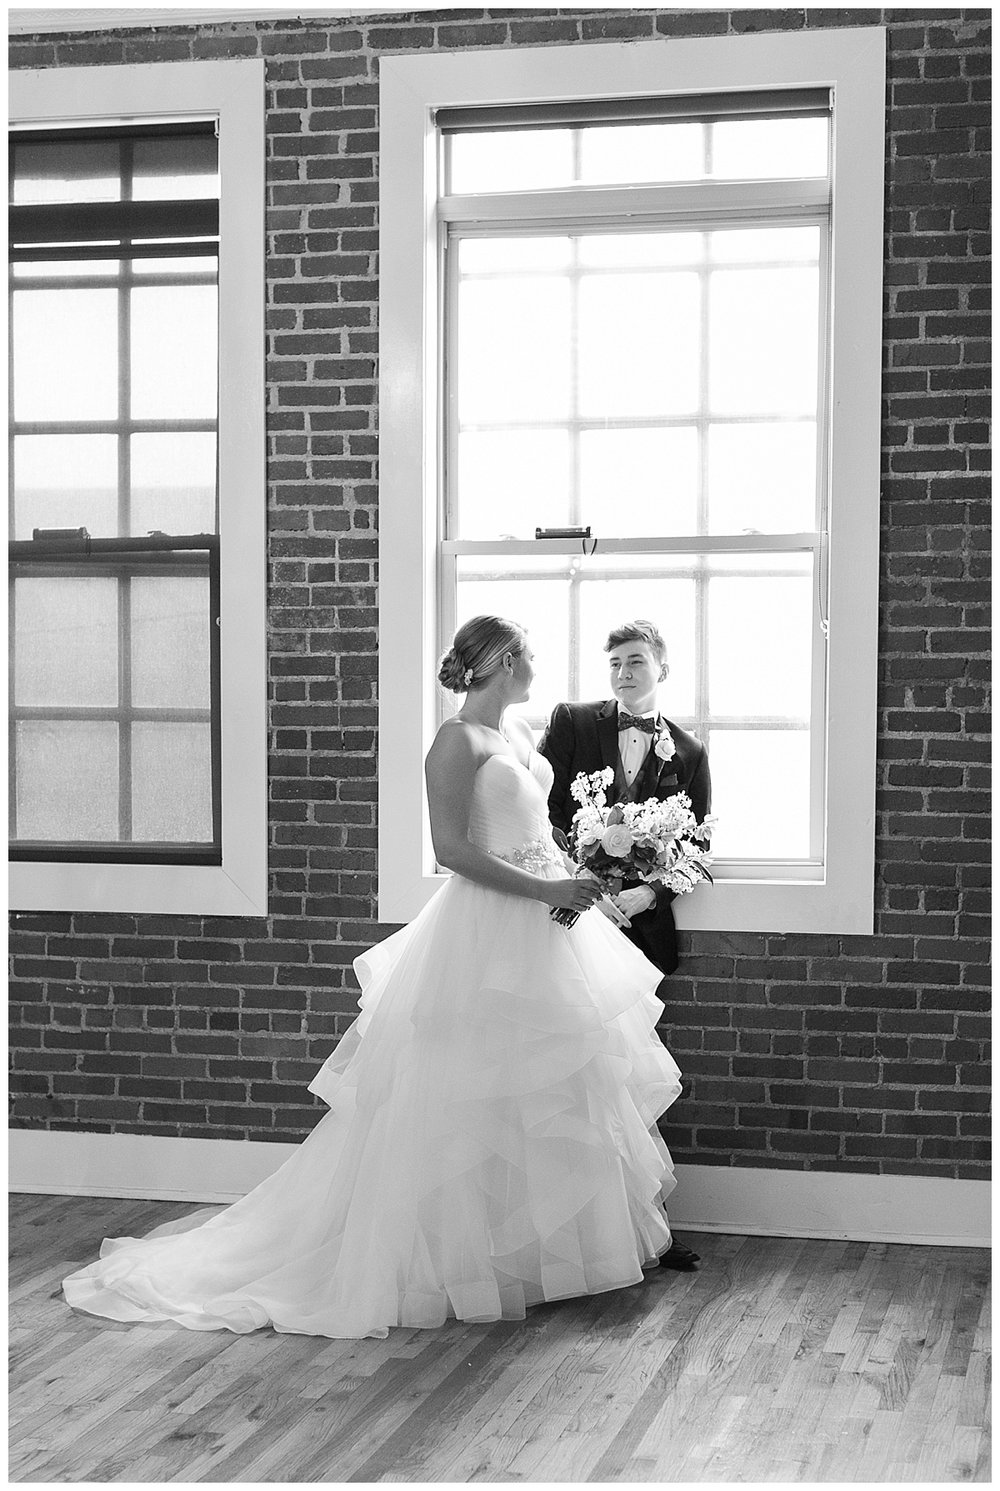 Scott's_Downtown_Monroe_Ga_Wedding_Photograpehrs_0014.jpg